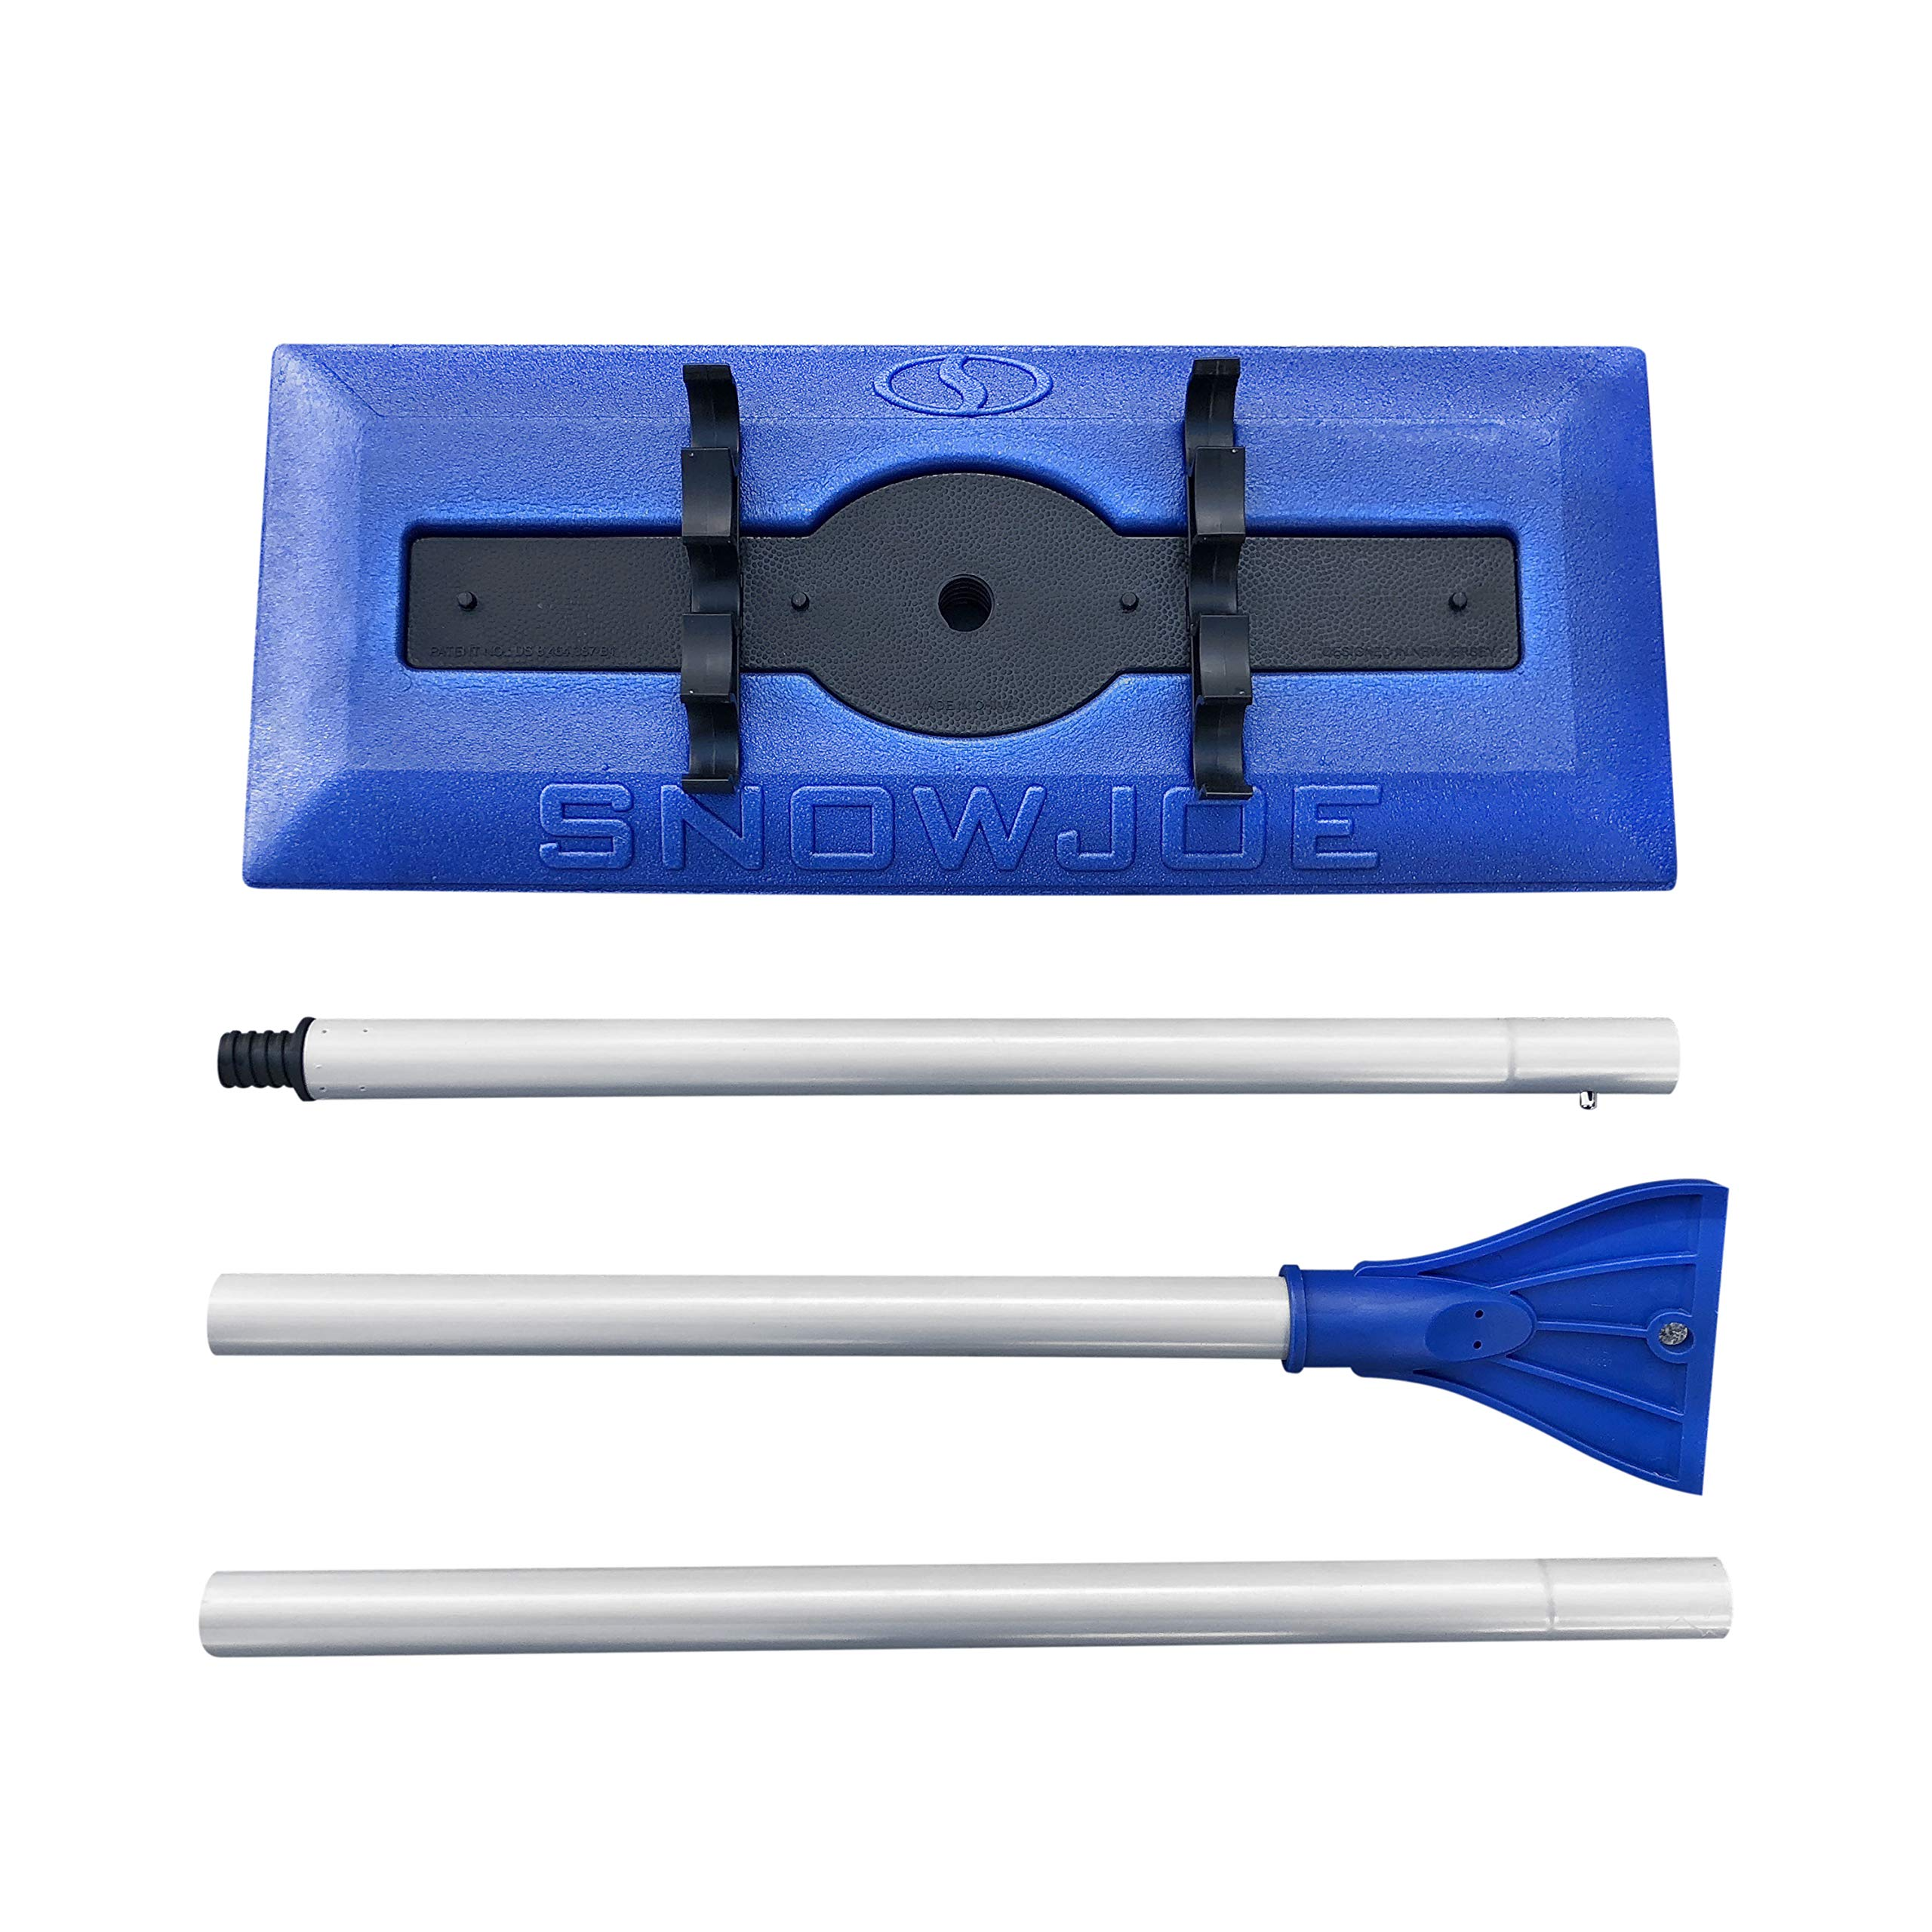 Snow Joe SJBLZD 18 Broom Snow Removal Tool w/52-Inch Compact Handle w/ 4-Inch Oversized Ice Scraper